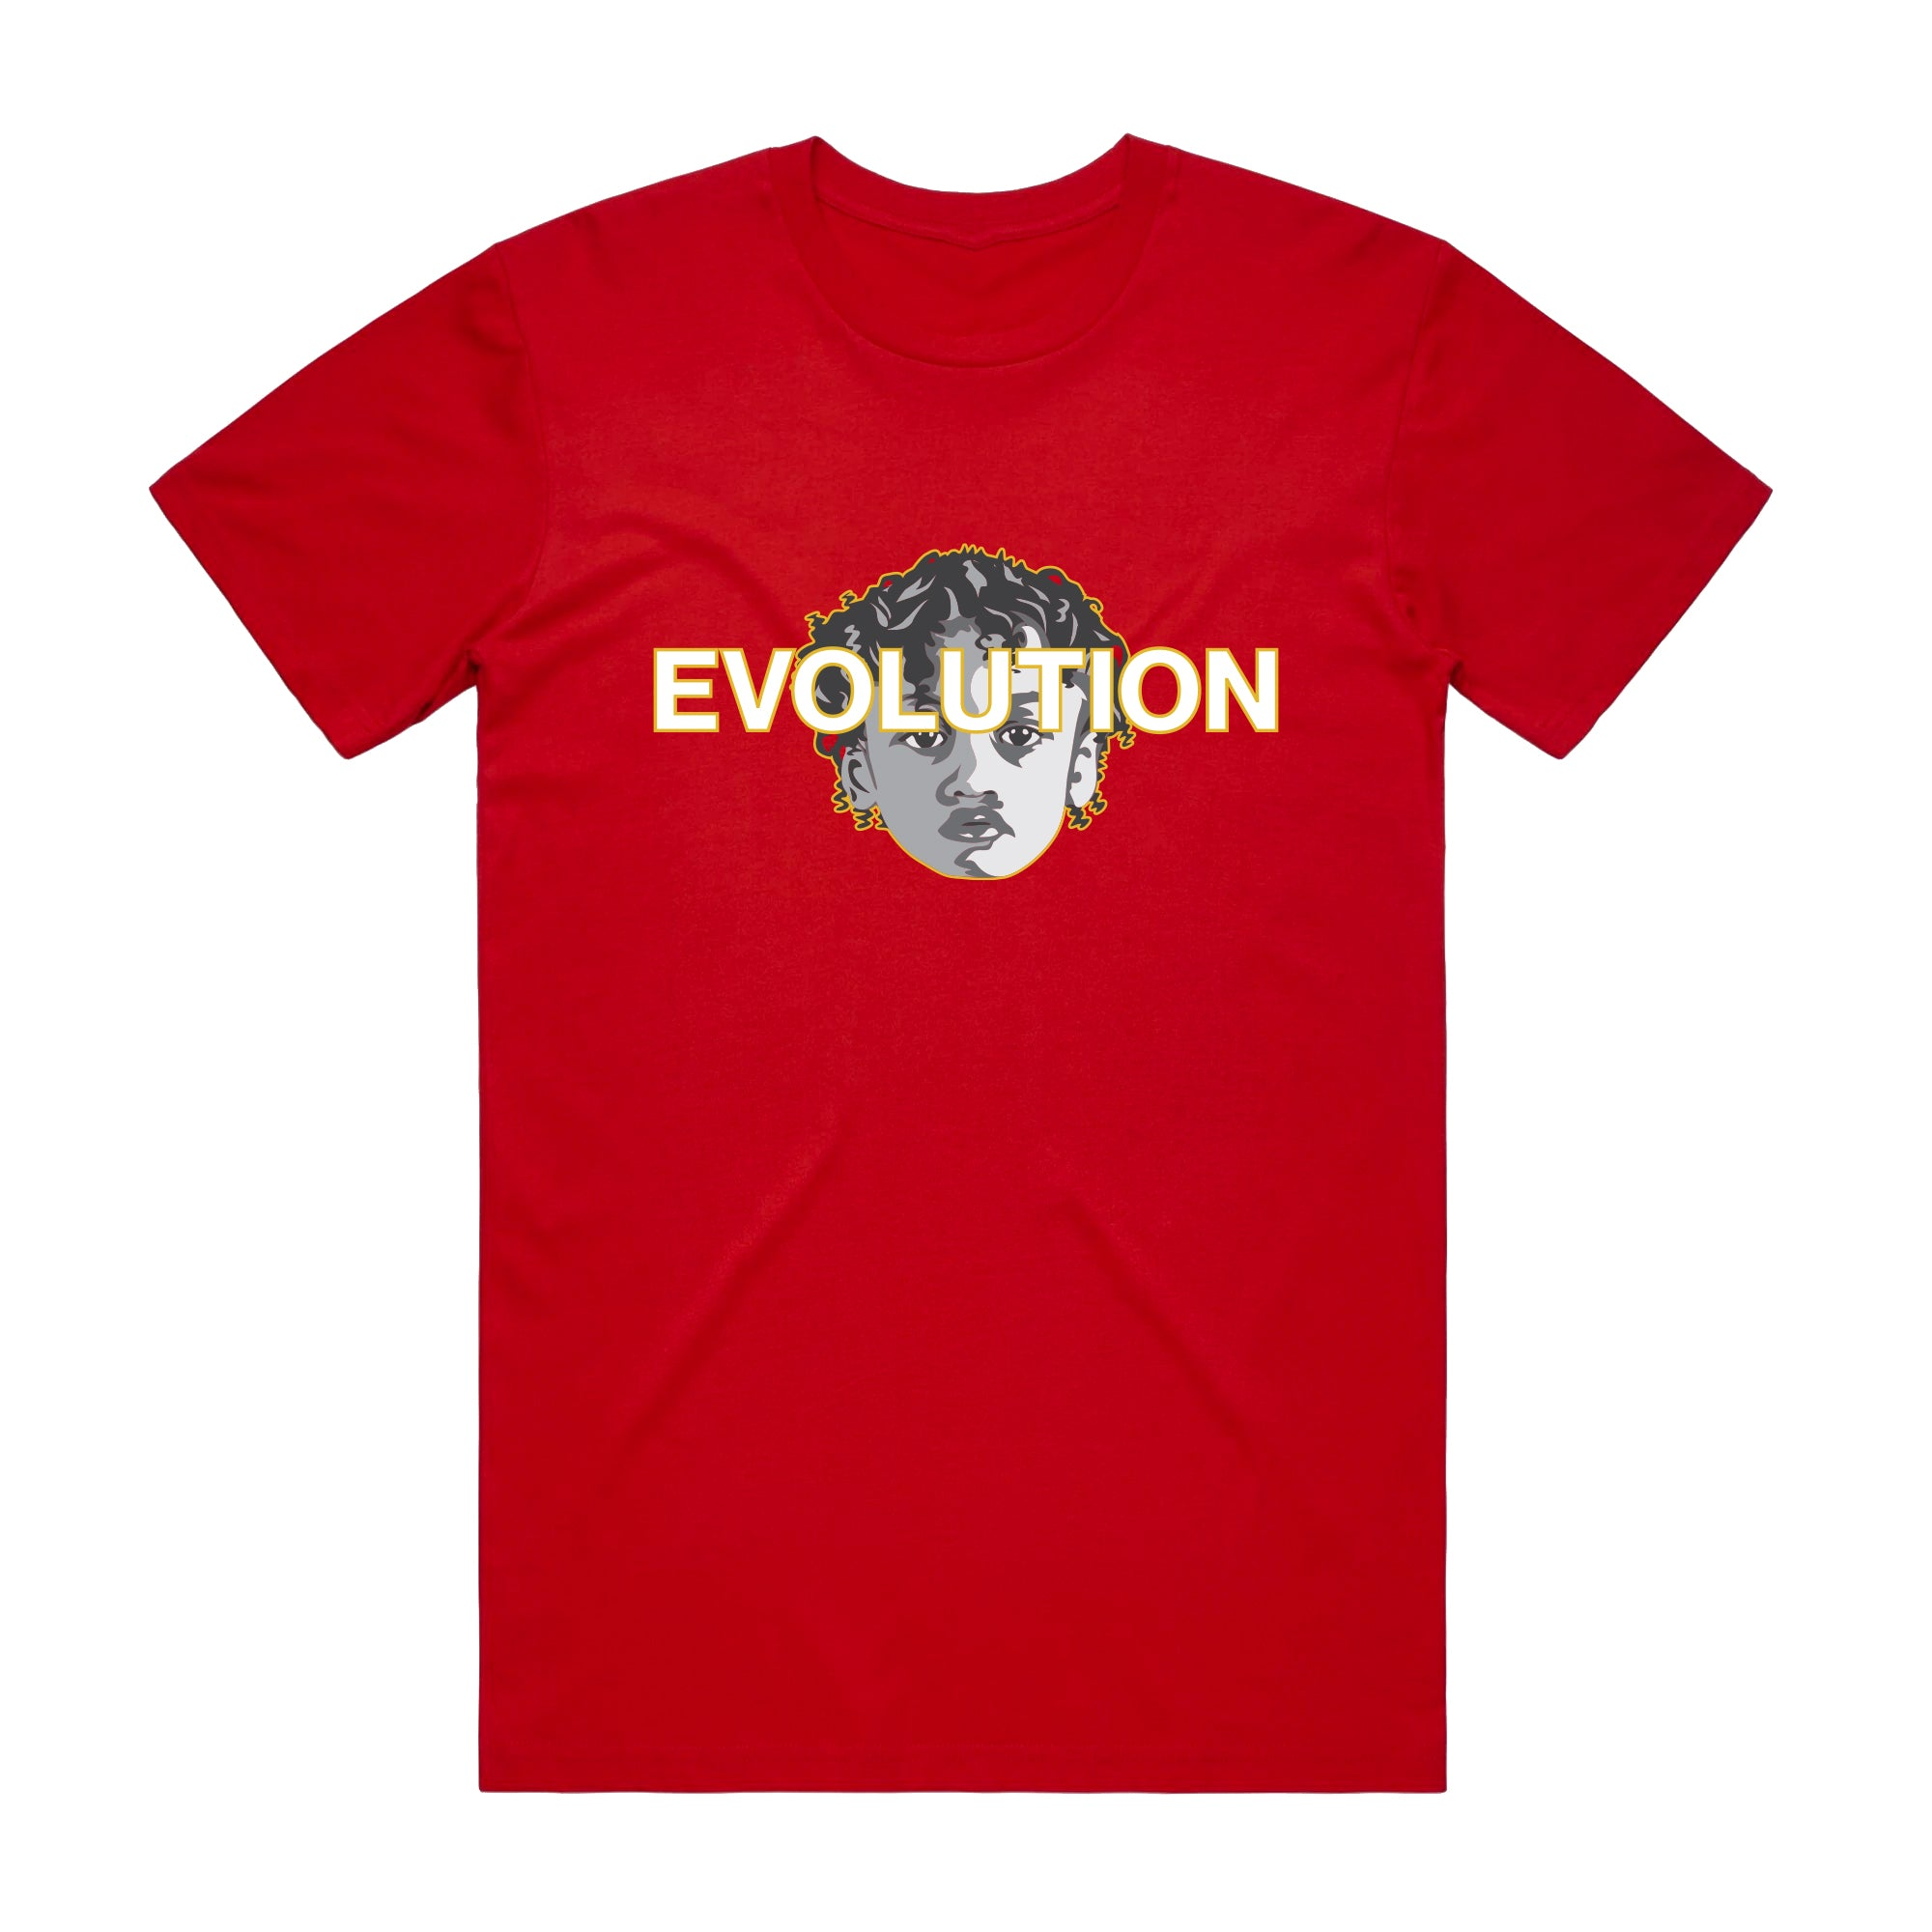 RED EVOLUTION T-SHIRT